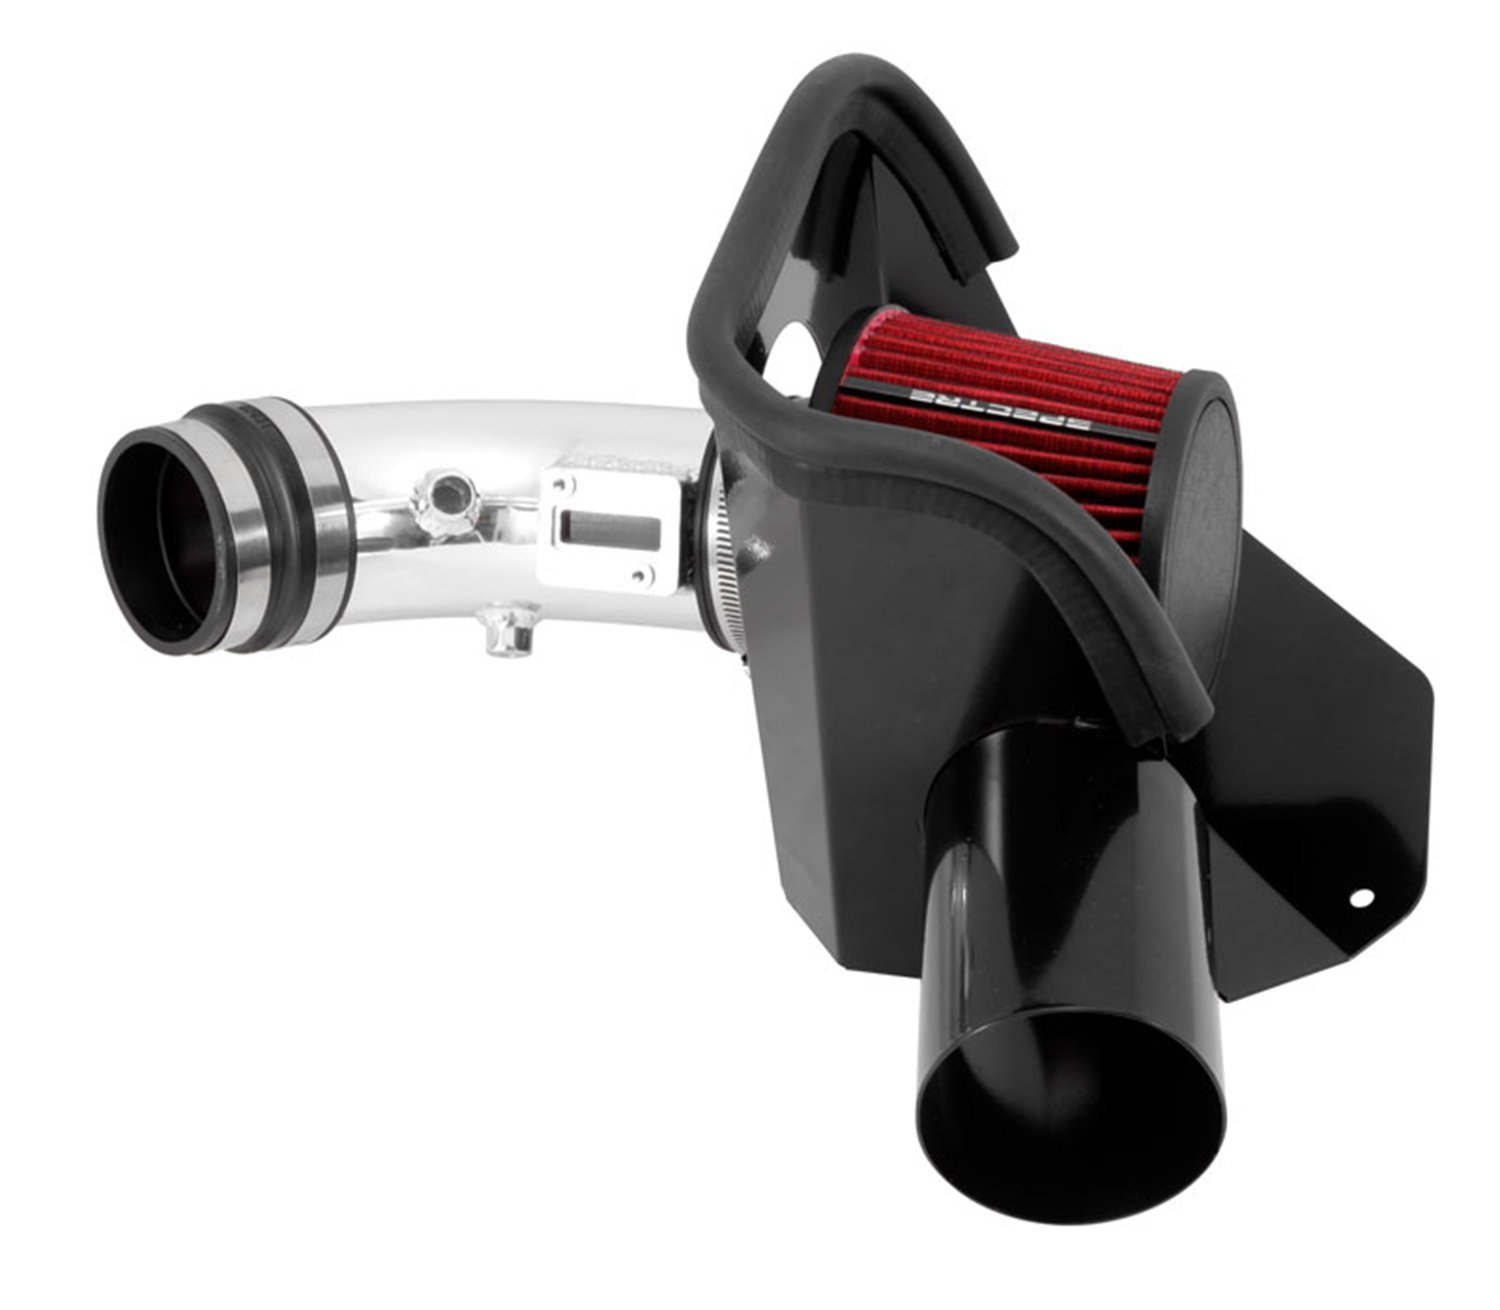 Spectre 10233 Air Intake Kit by Spectre (Image #1)